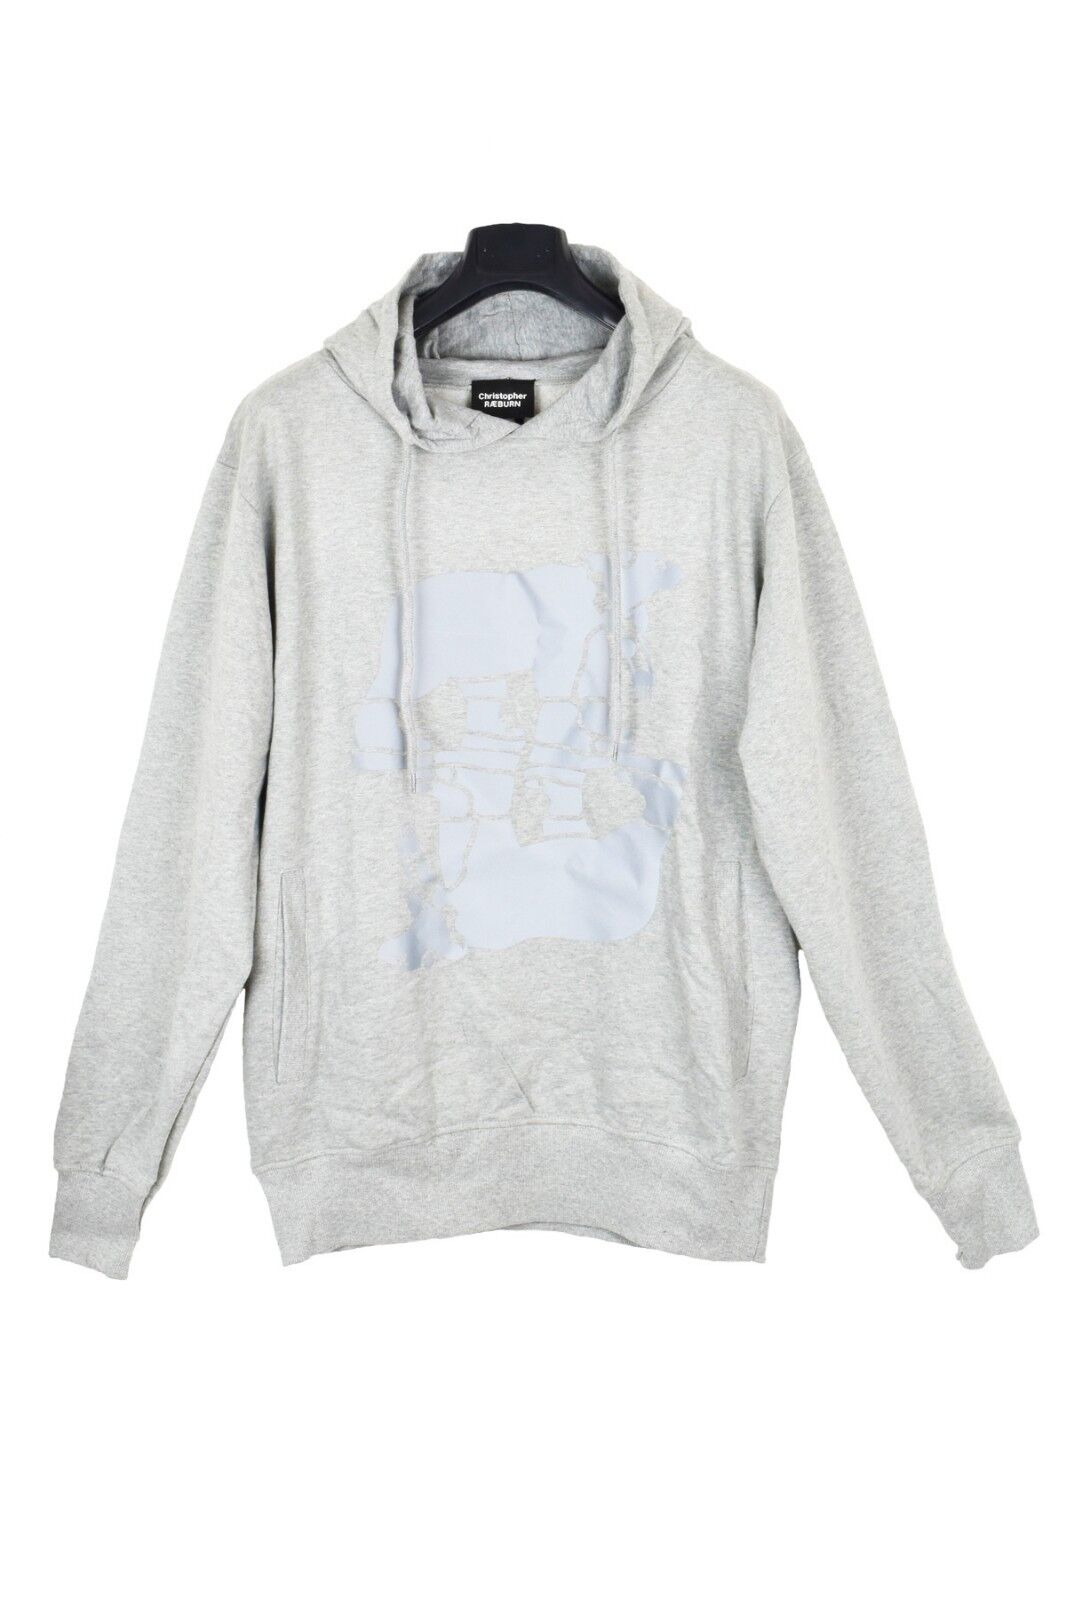 NEW Christopher Raeburn animal patches hoodie  | Komfort